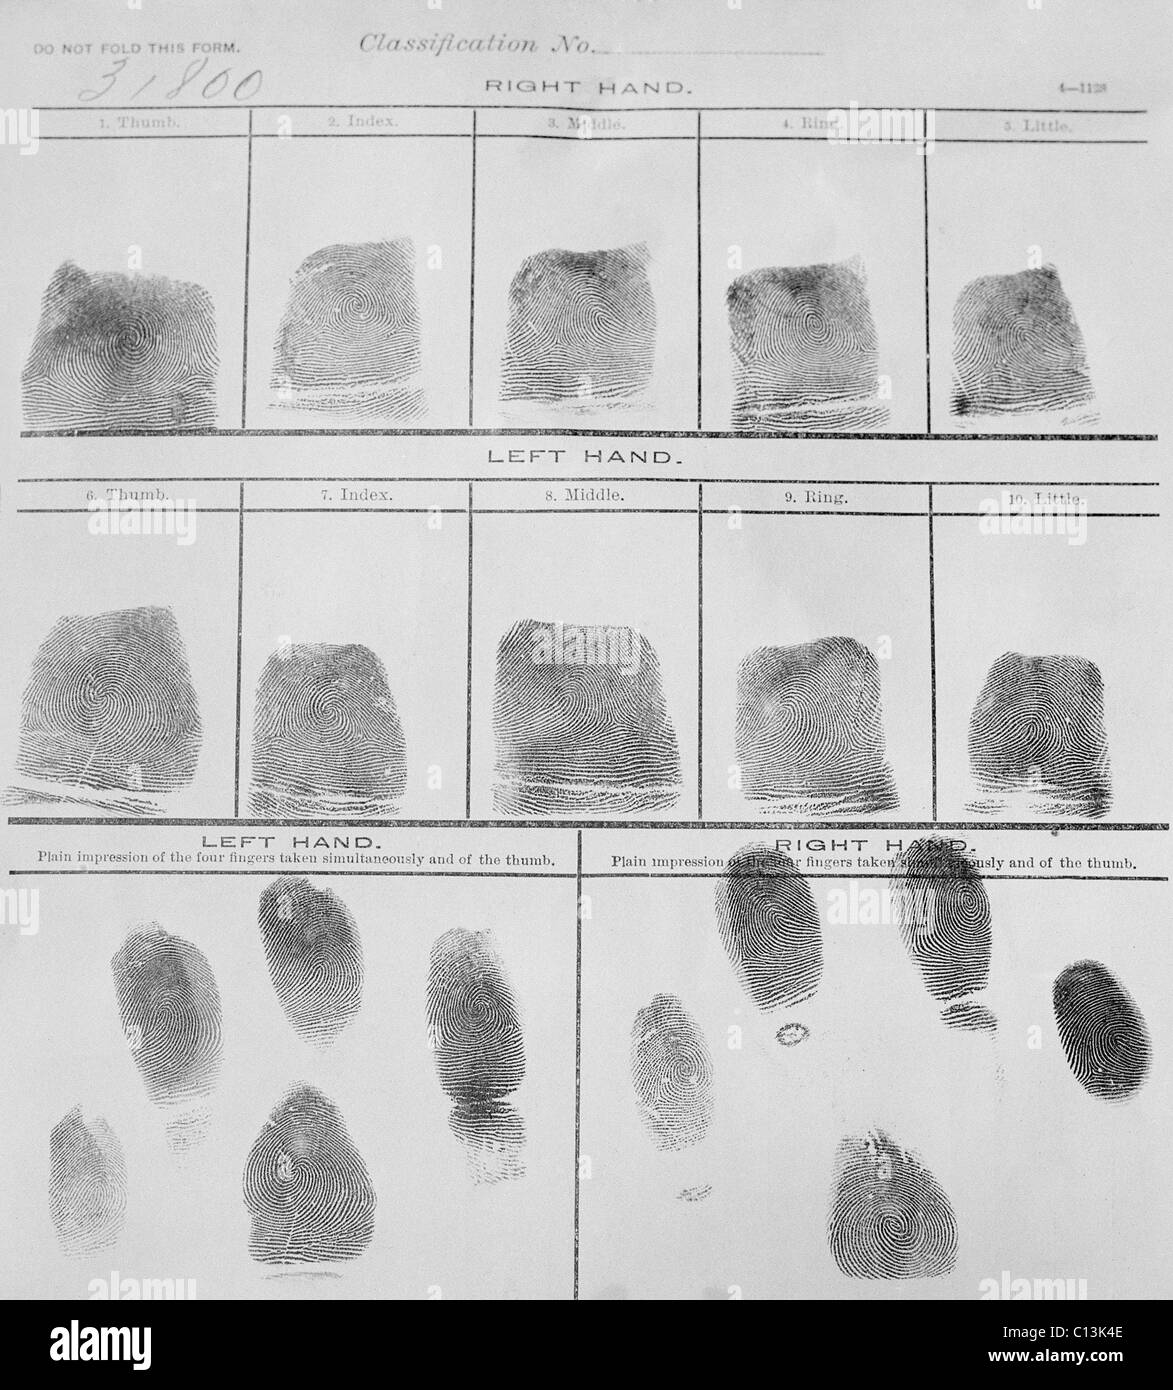 Fingerprint Record Sheet From The Navy Department In